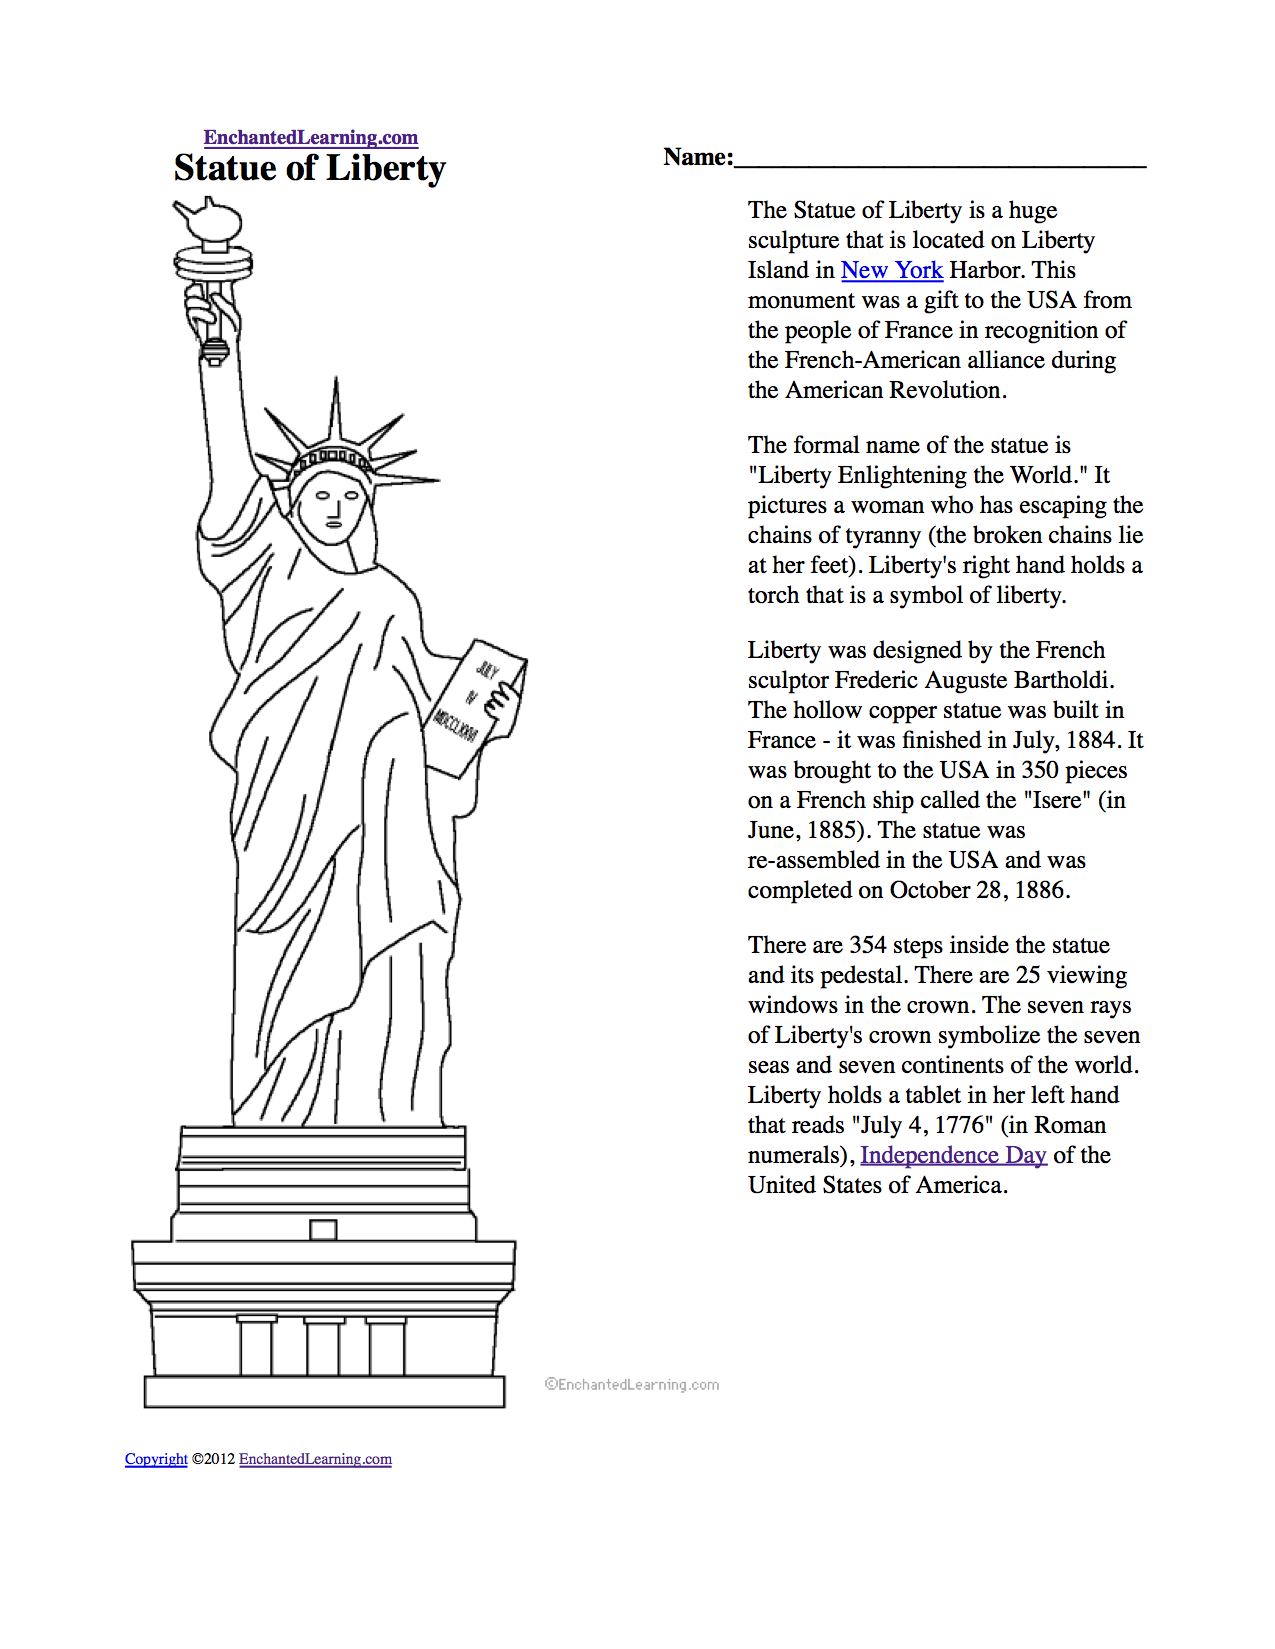 Informational Reading About The Statue Of Liberty For